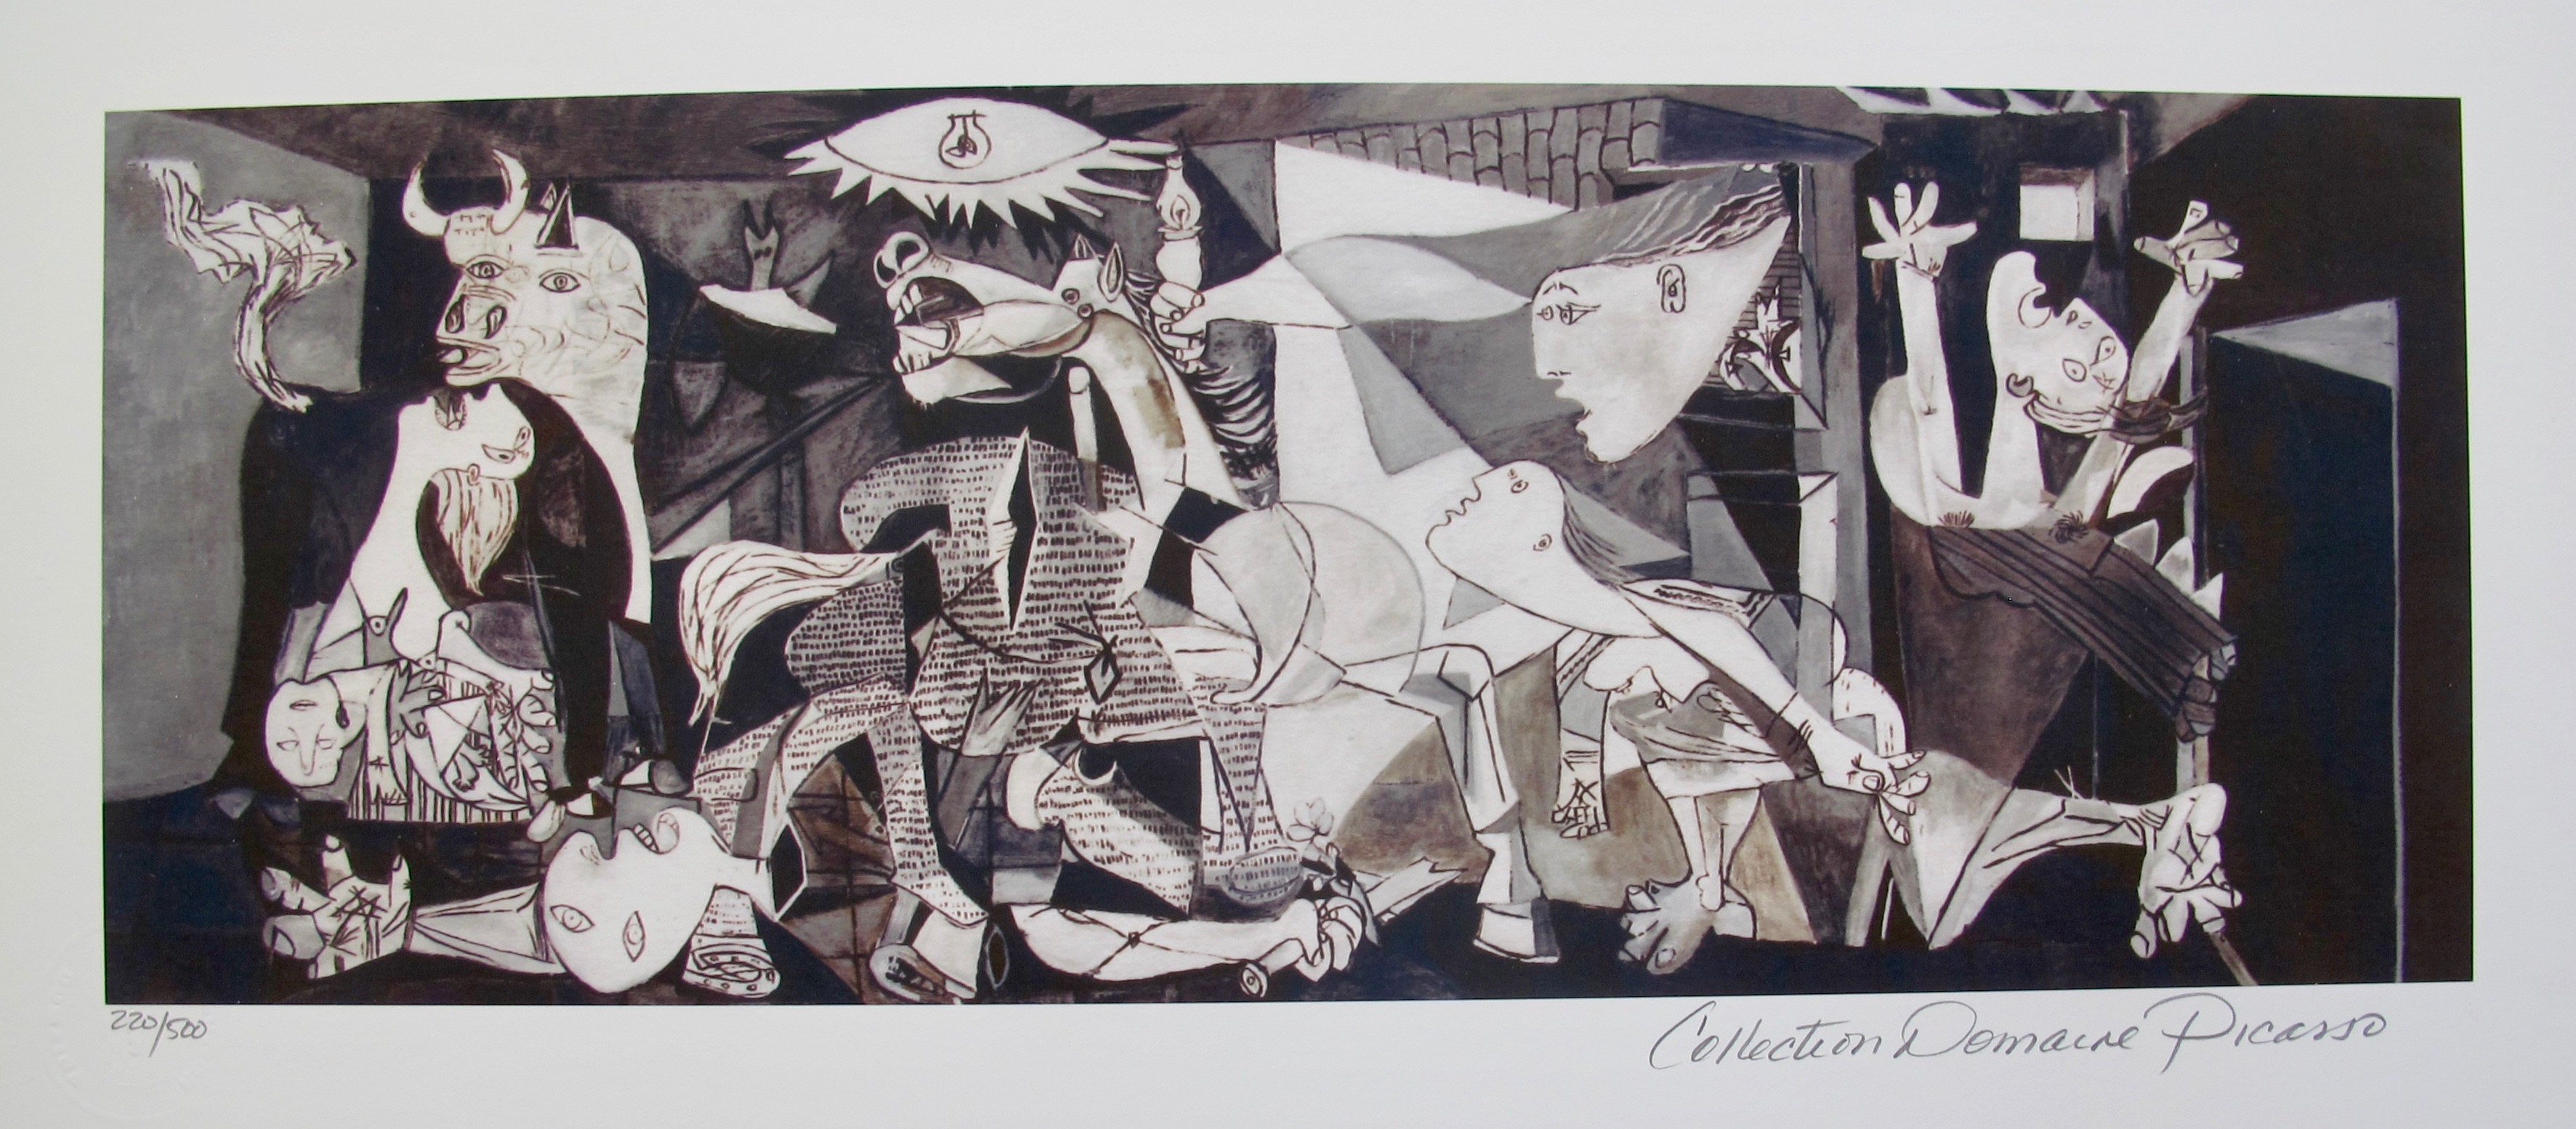 Pablo Picasso GUERNICA Estate Signed Limited Edition Giclee